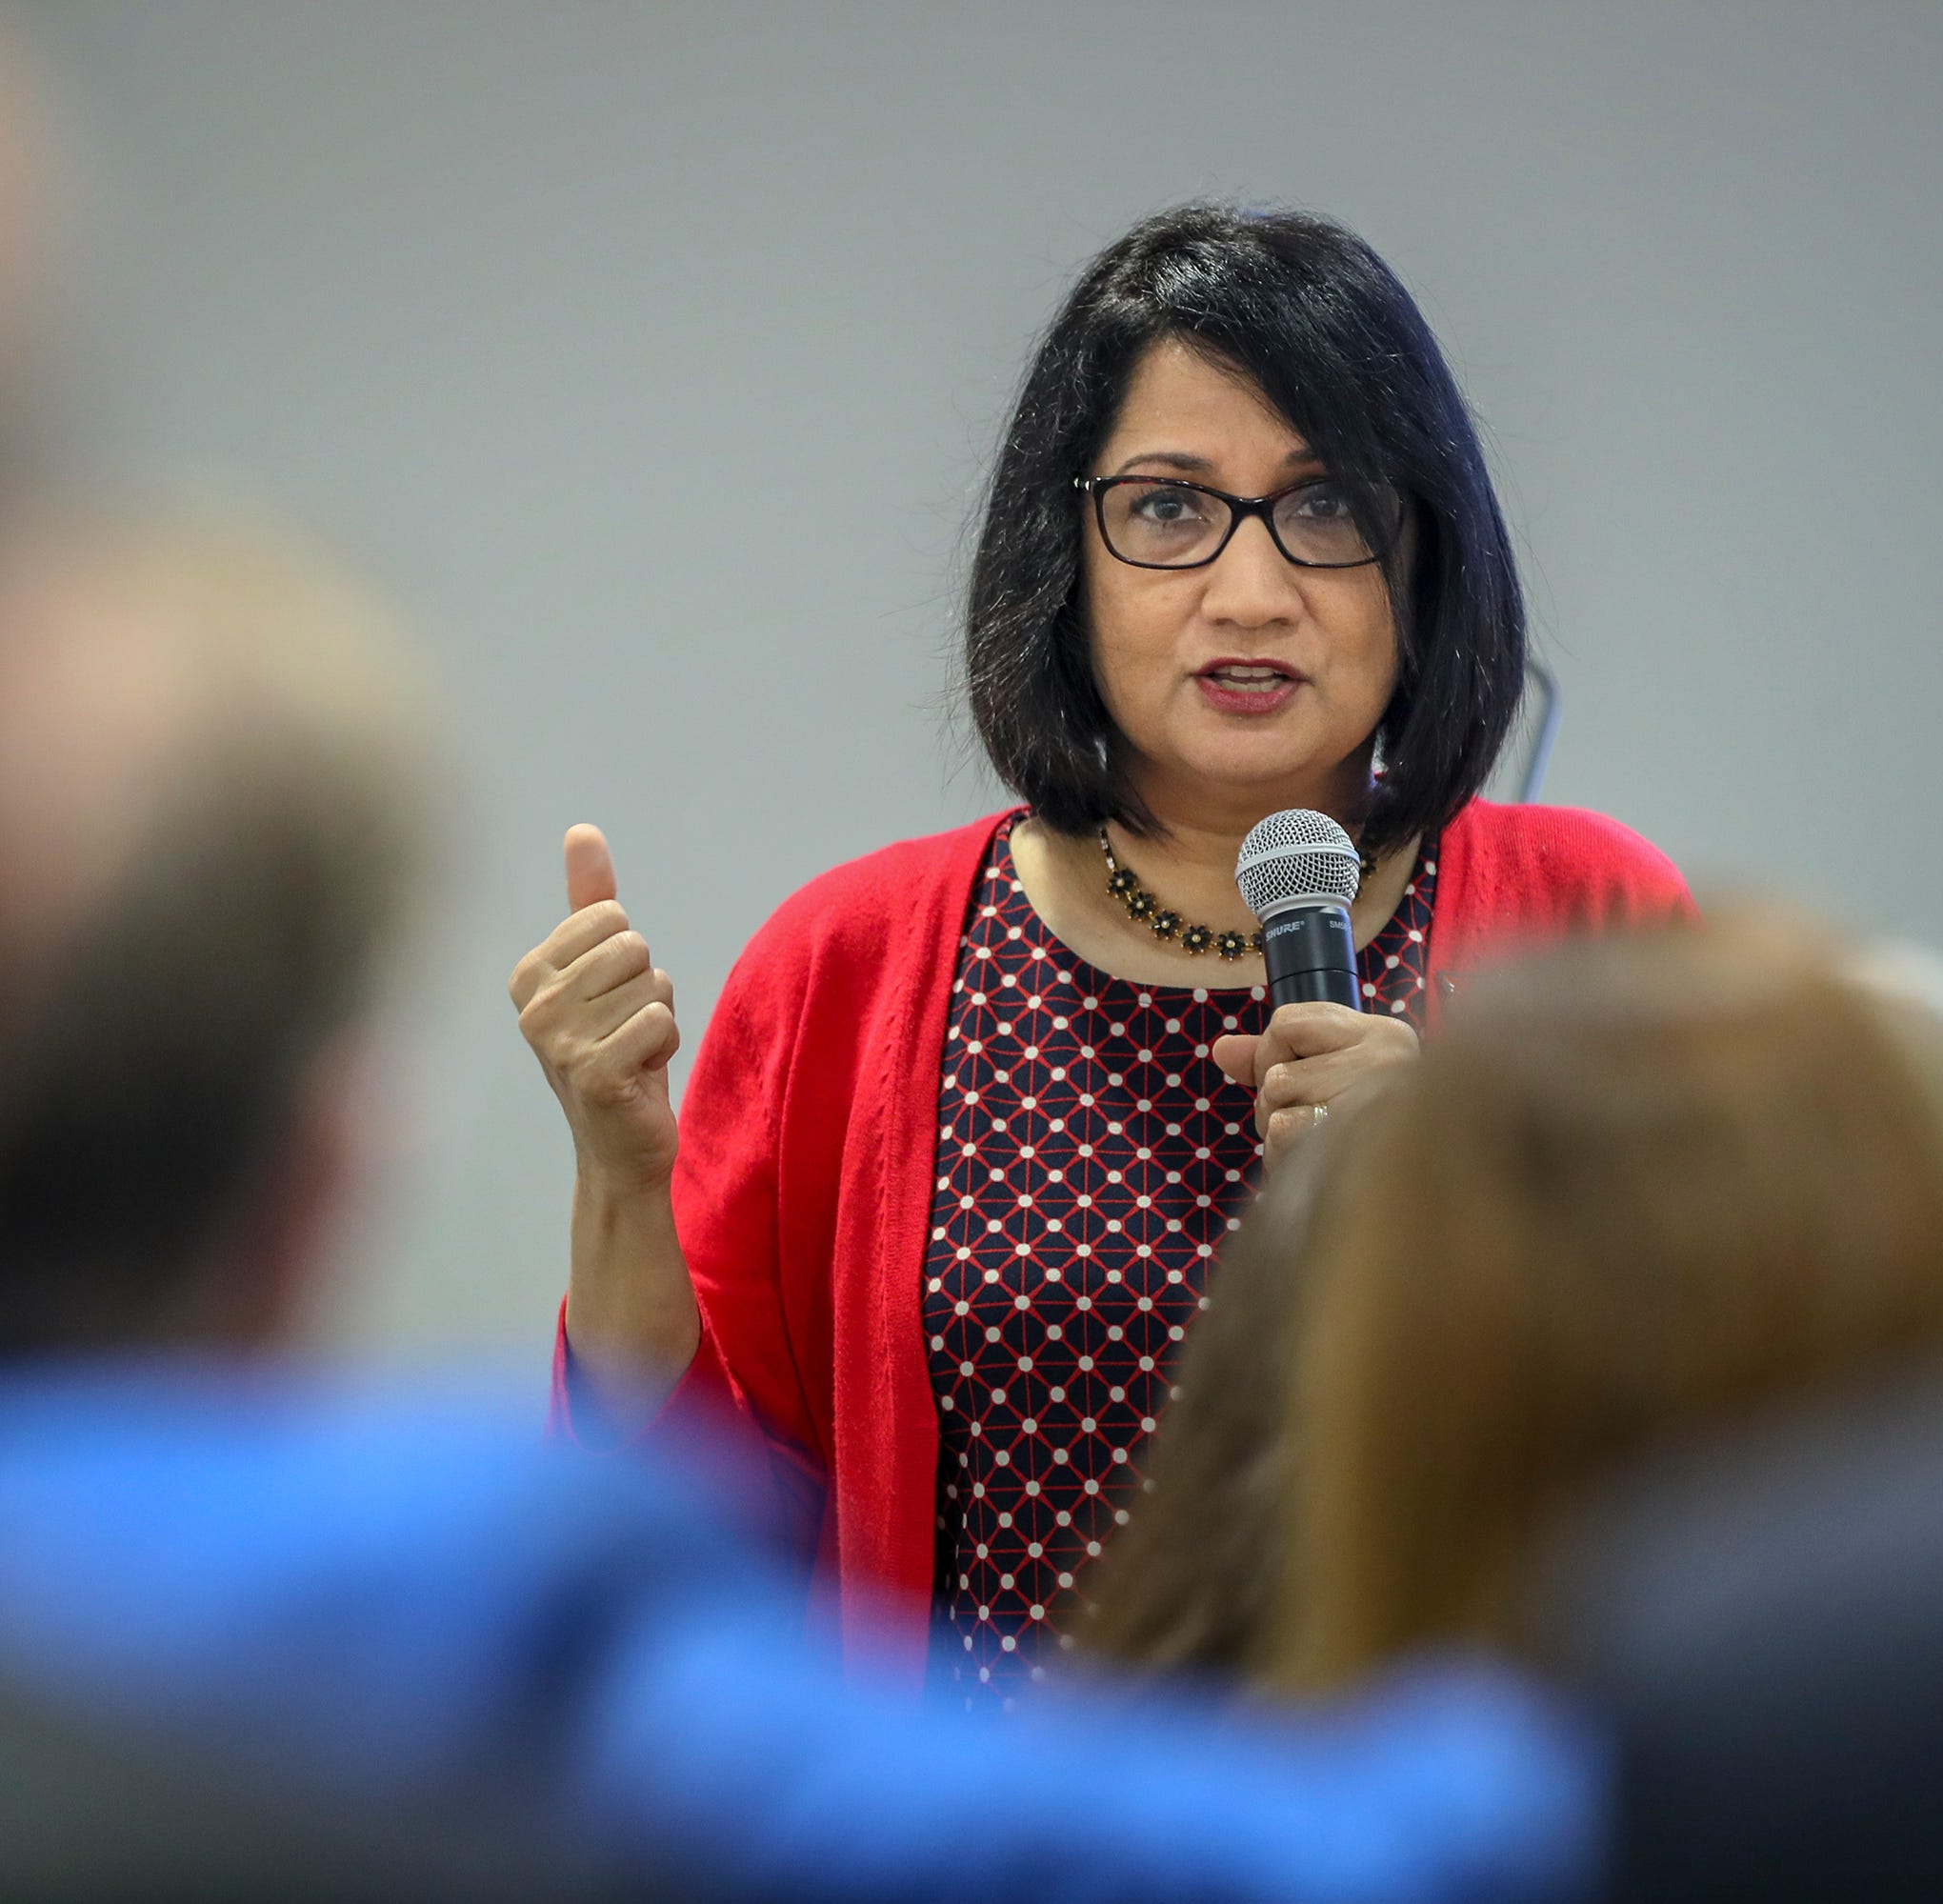 University of Louisville President Neeli Bendapudi plans to donate raise back to school